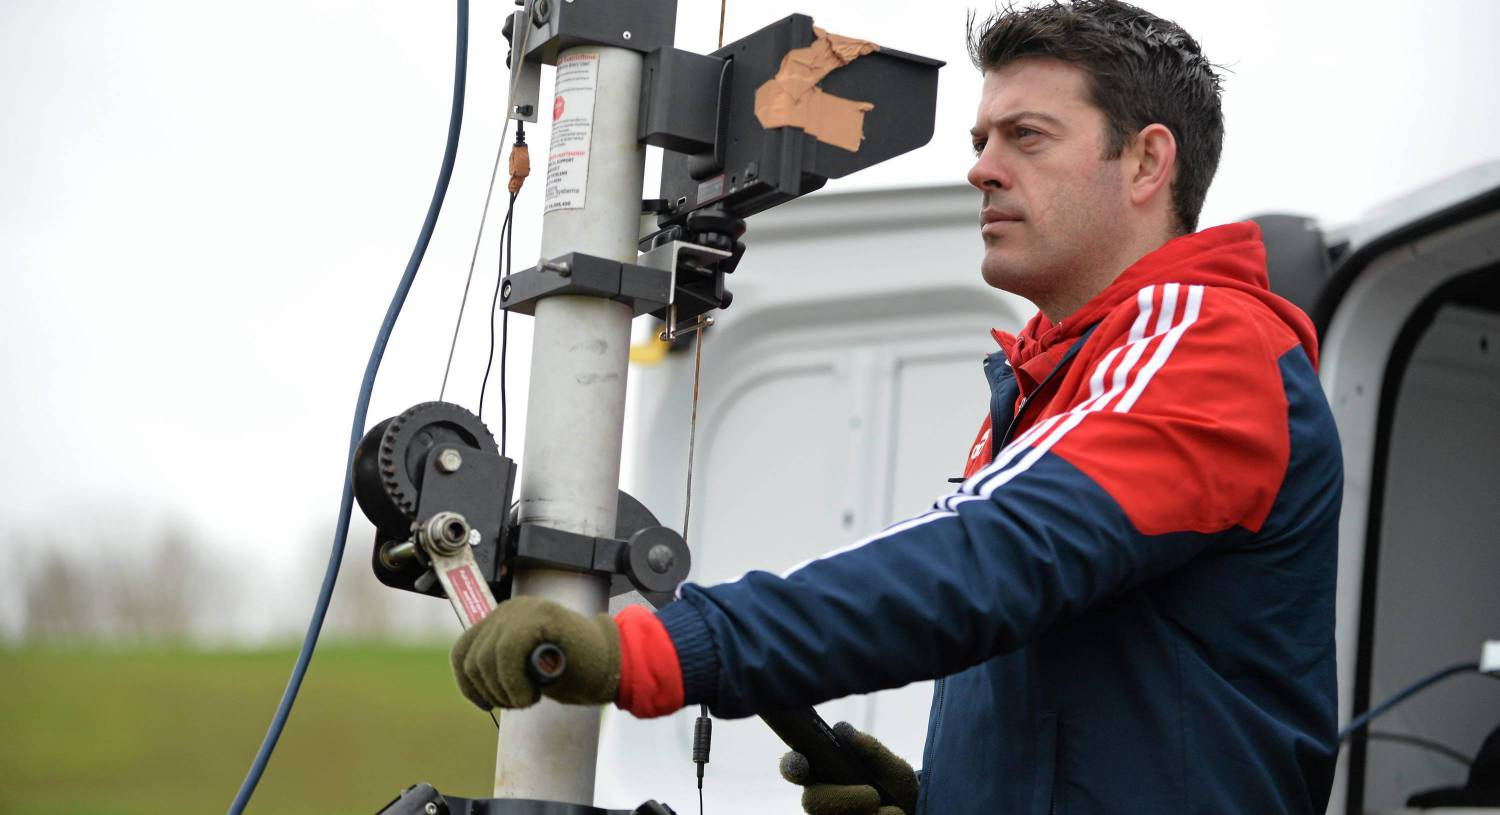 Munster follow NASA's footsteps in reaching for the stars